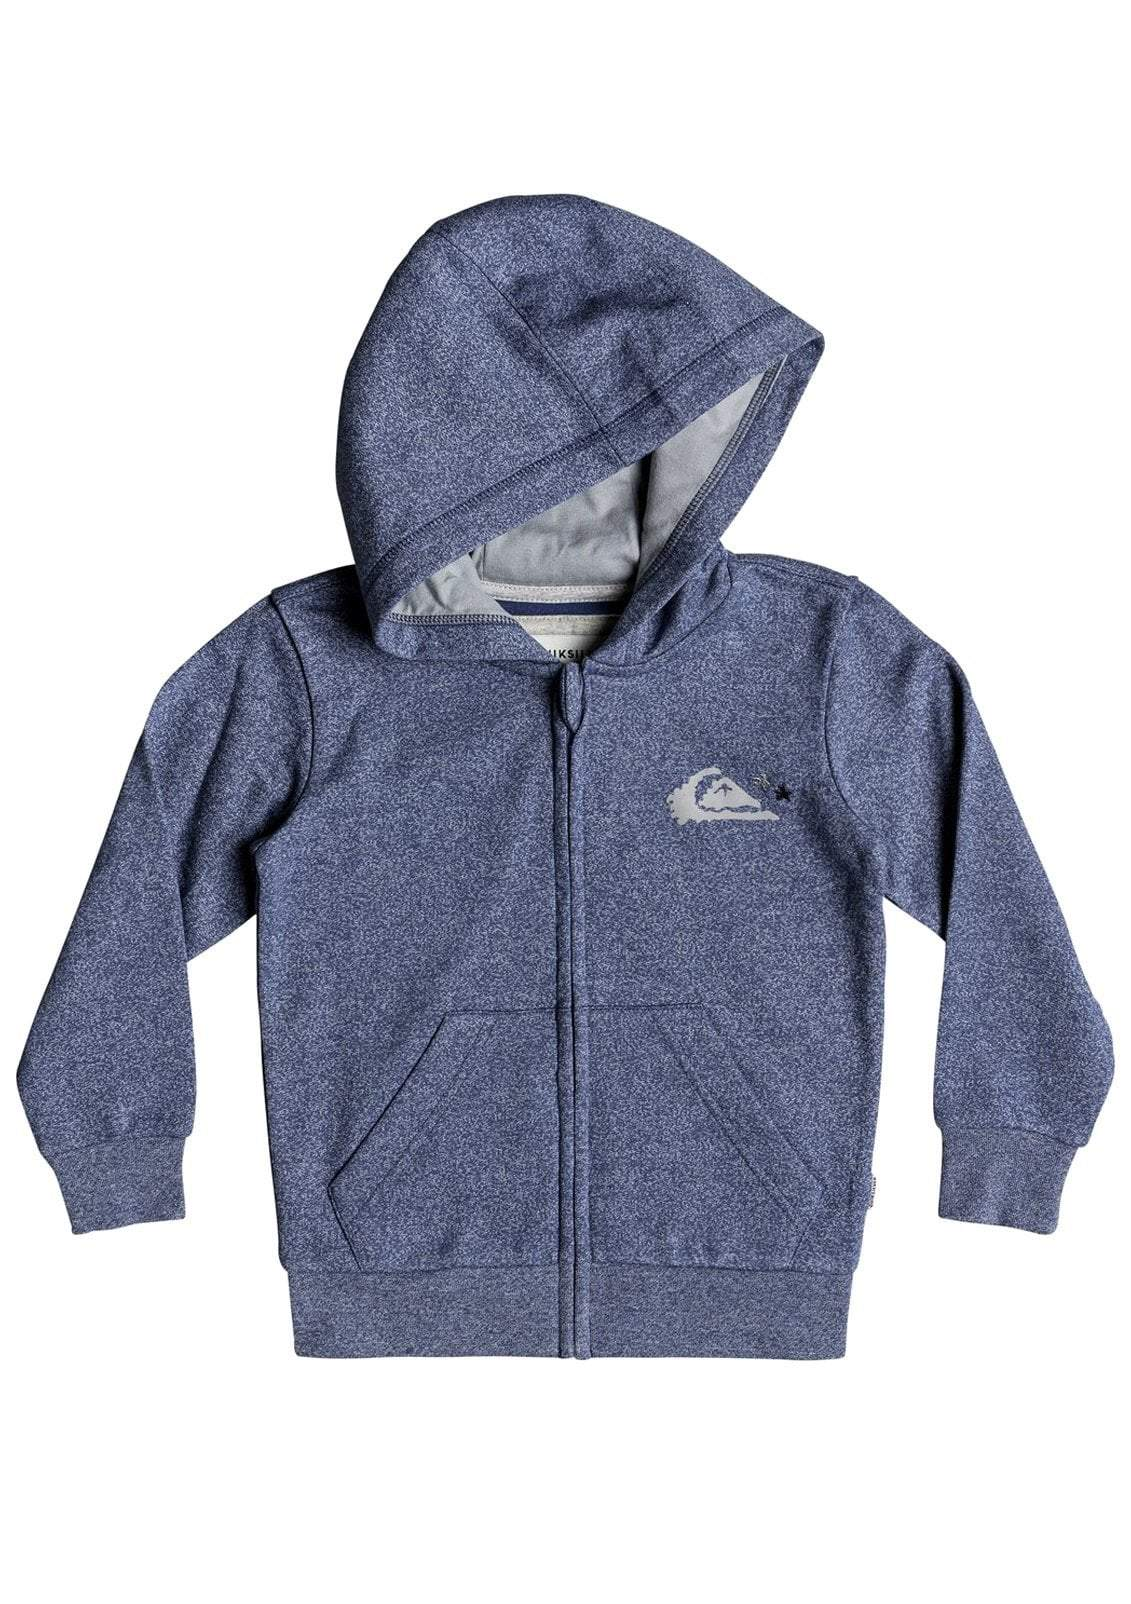 Toddler Boy's Legend Zip-Up Hoodie